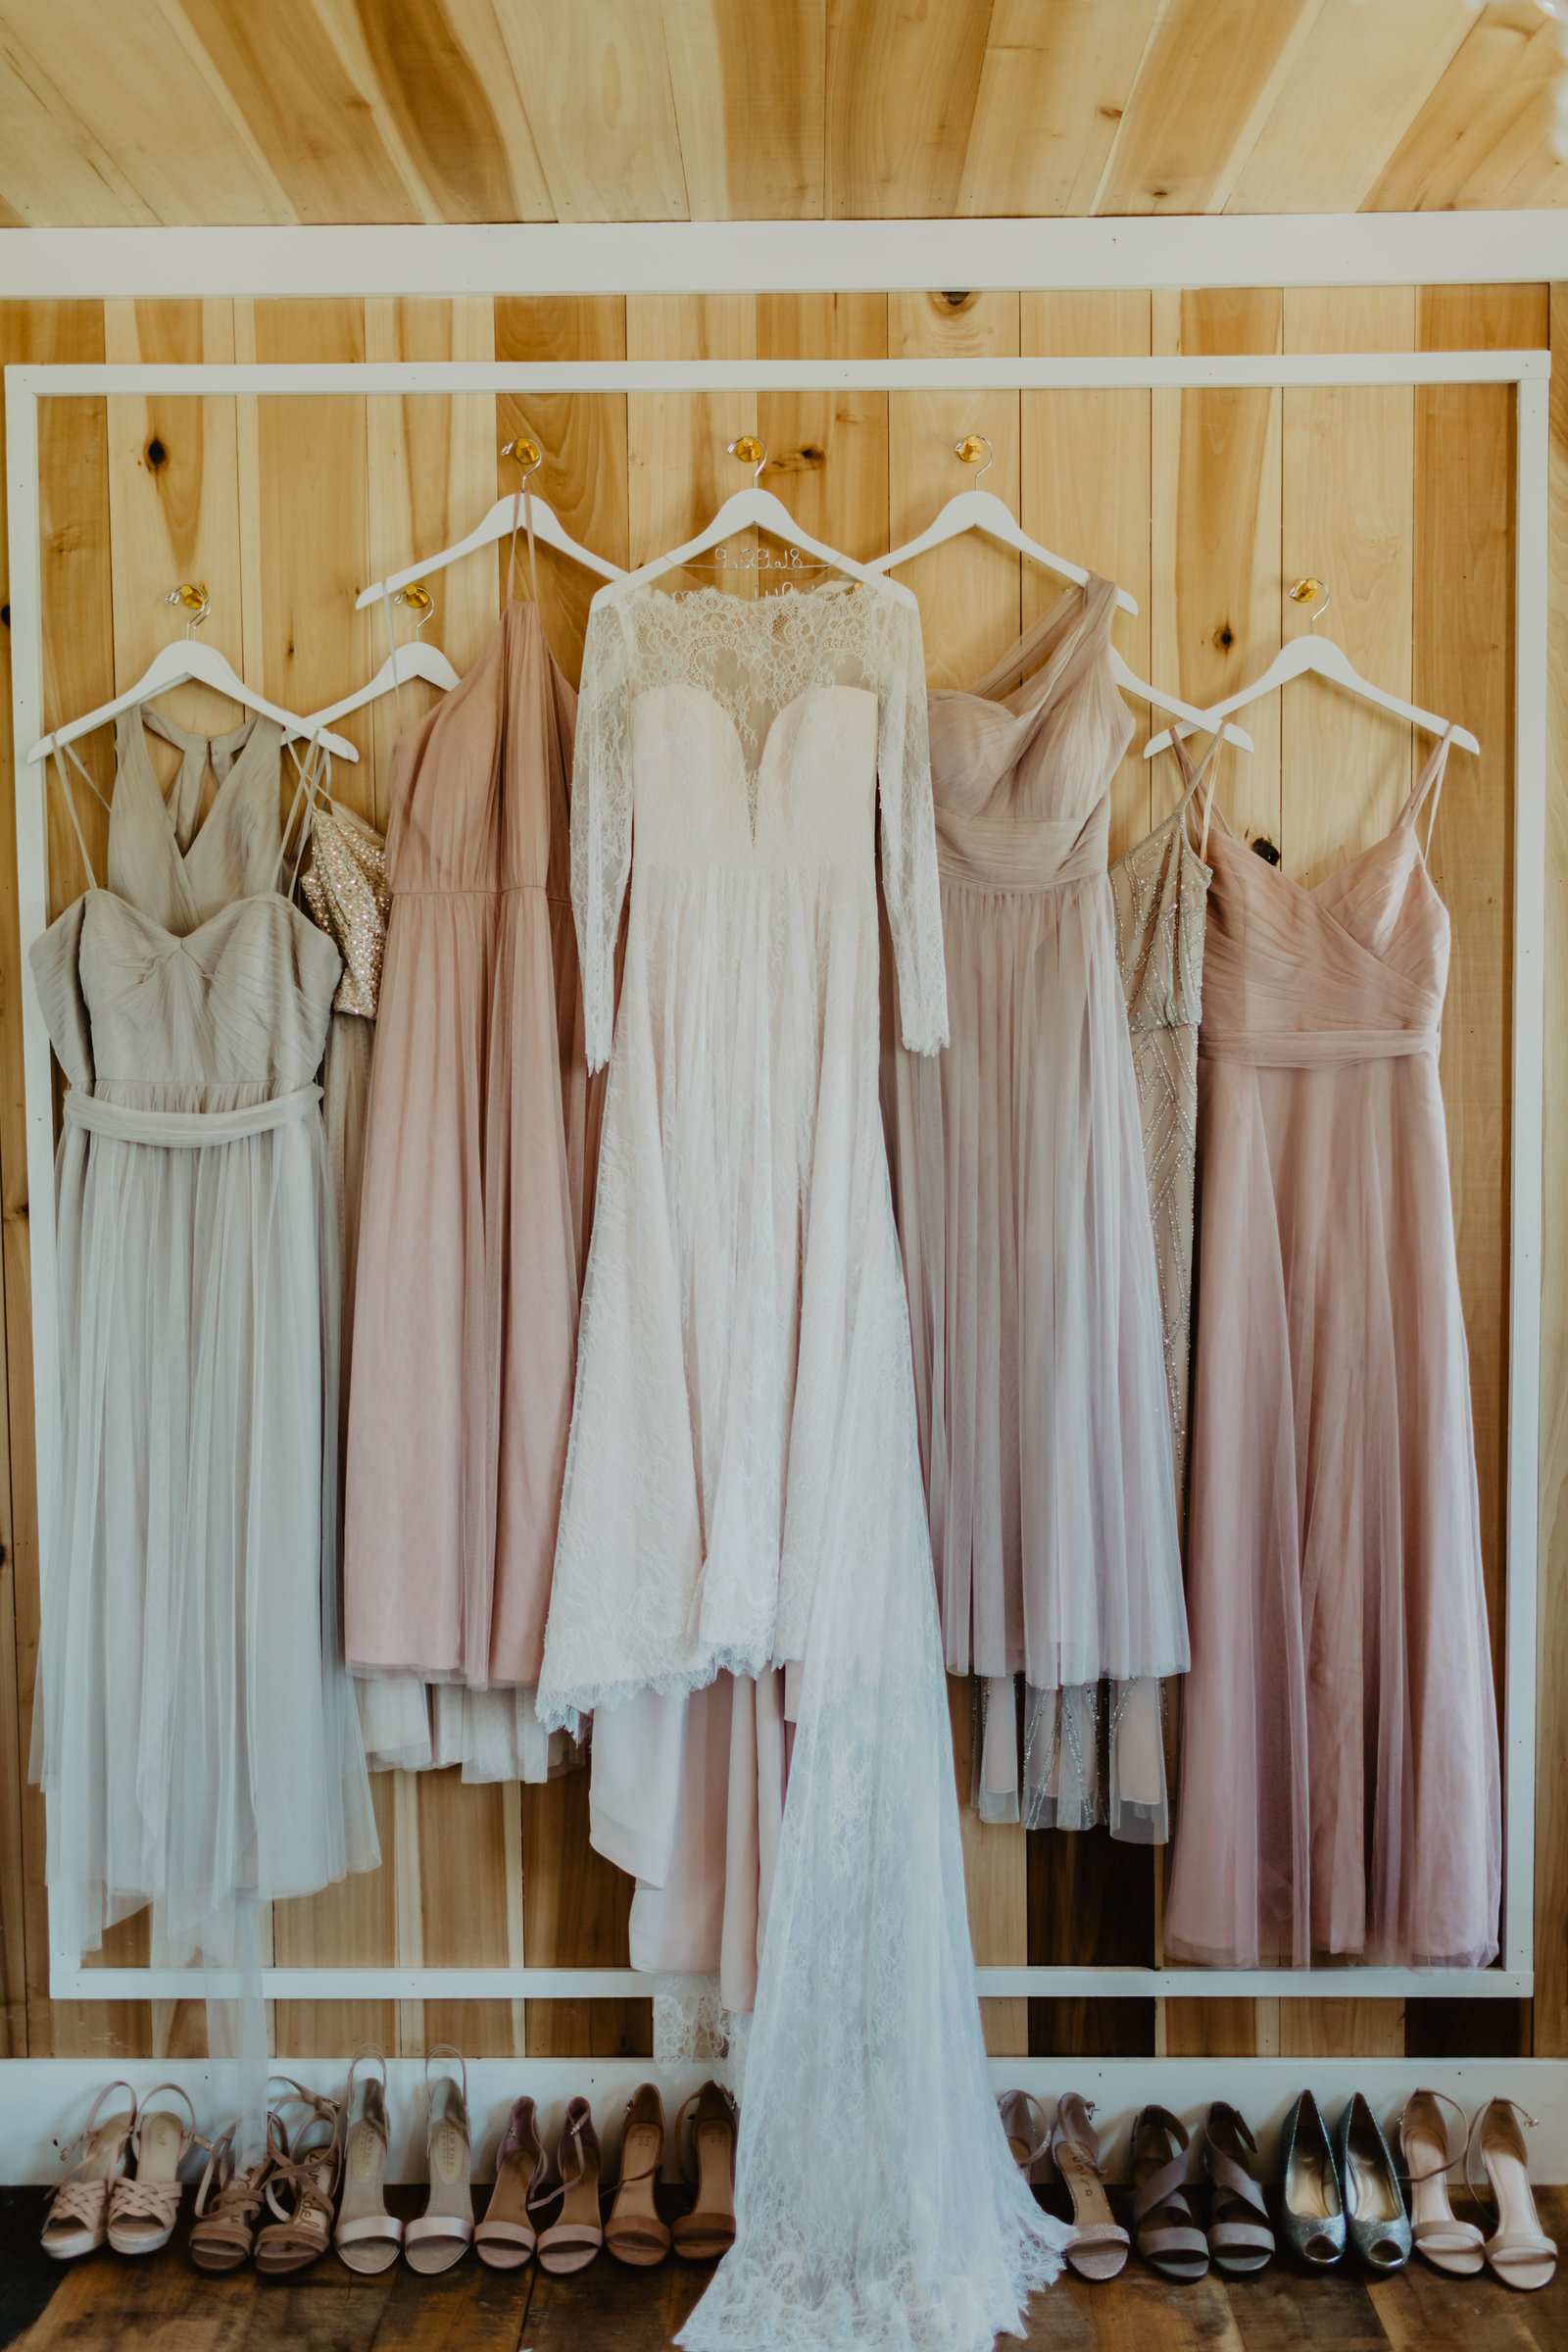 Bride and Bridesmaid dresses hanging on rustic bridal suite wall with shoes lined beneath them at Allenbrooke Farms.